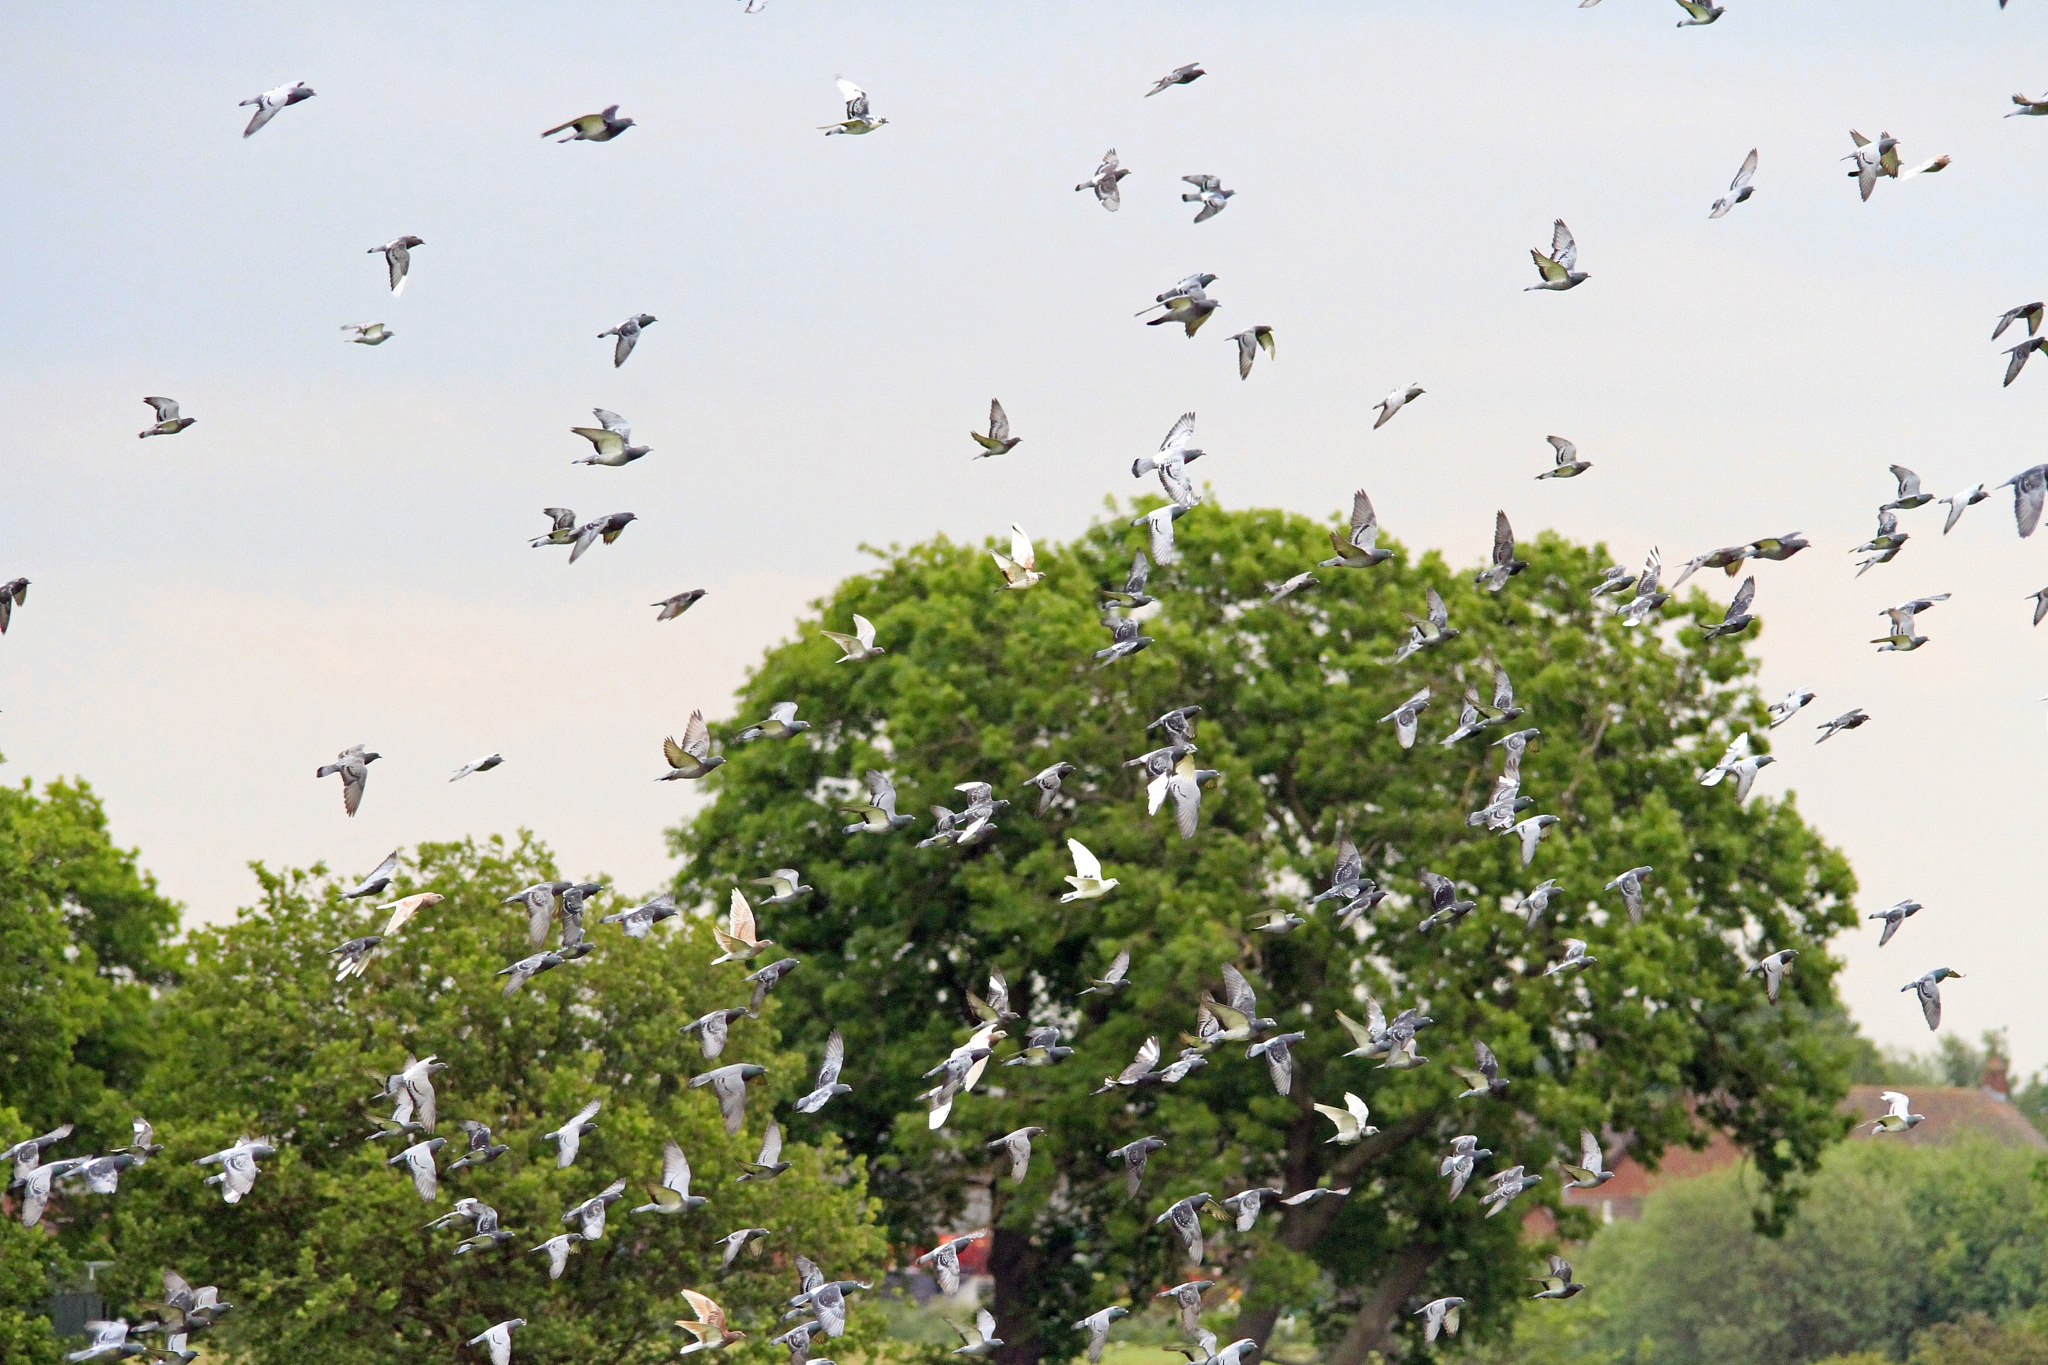 Flock of Pigeons by Martin Roper